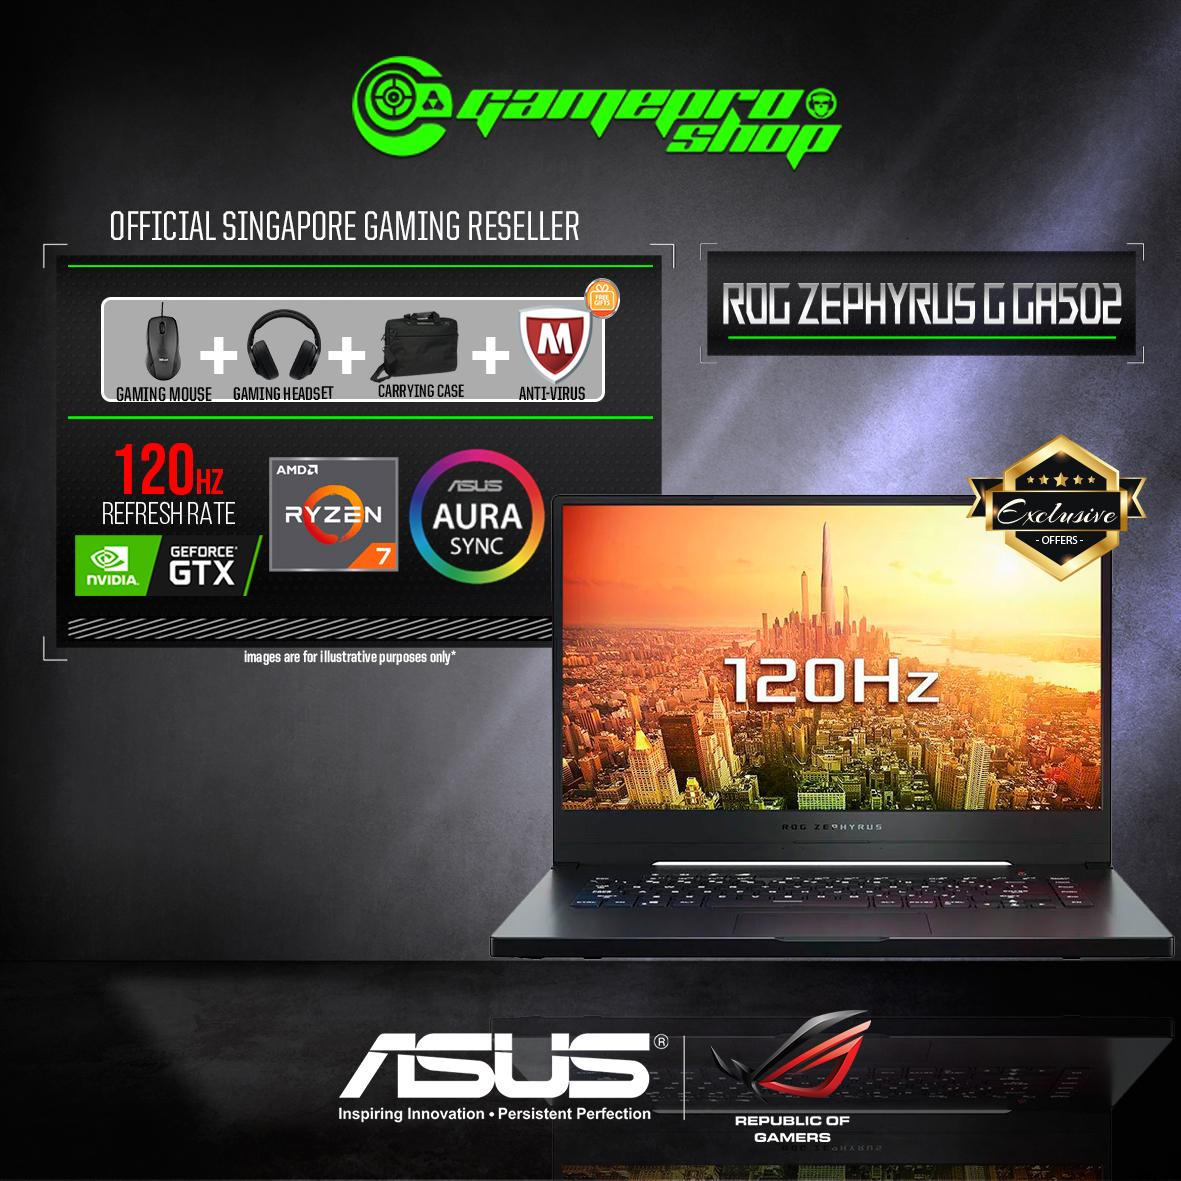 9th Gen ASUS ROG Zephyrus G GA502DU - AL025T GTX1660Ti Exclusive (R7-3750H / 16GB / 512GB SSD / W10) 15.6 FHD WITH 120Hz GAMING LAPTOP *NDP PROMO*